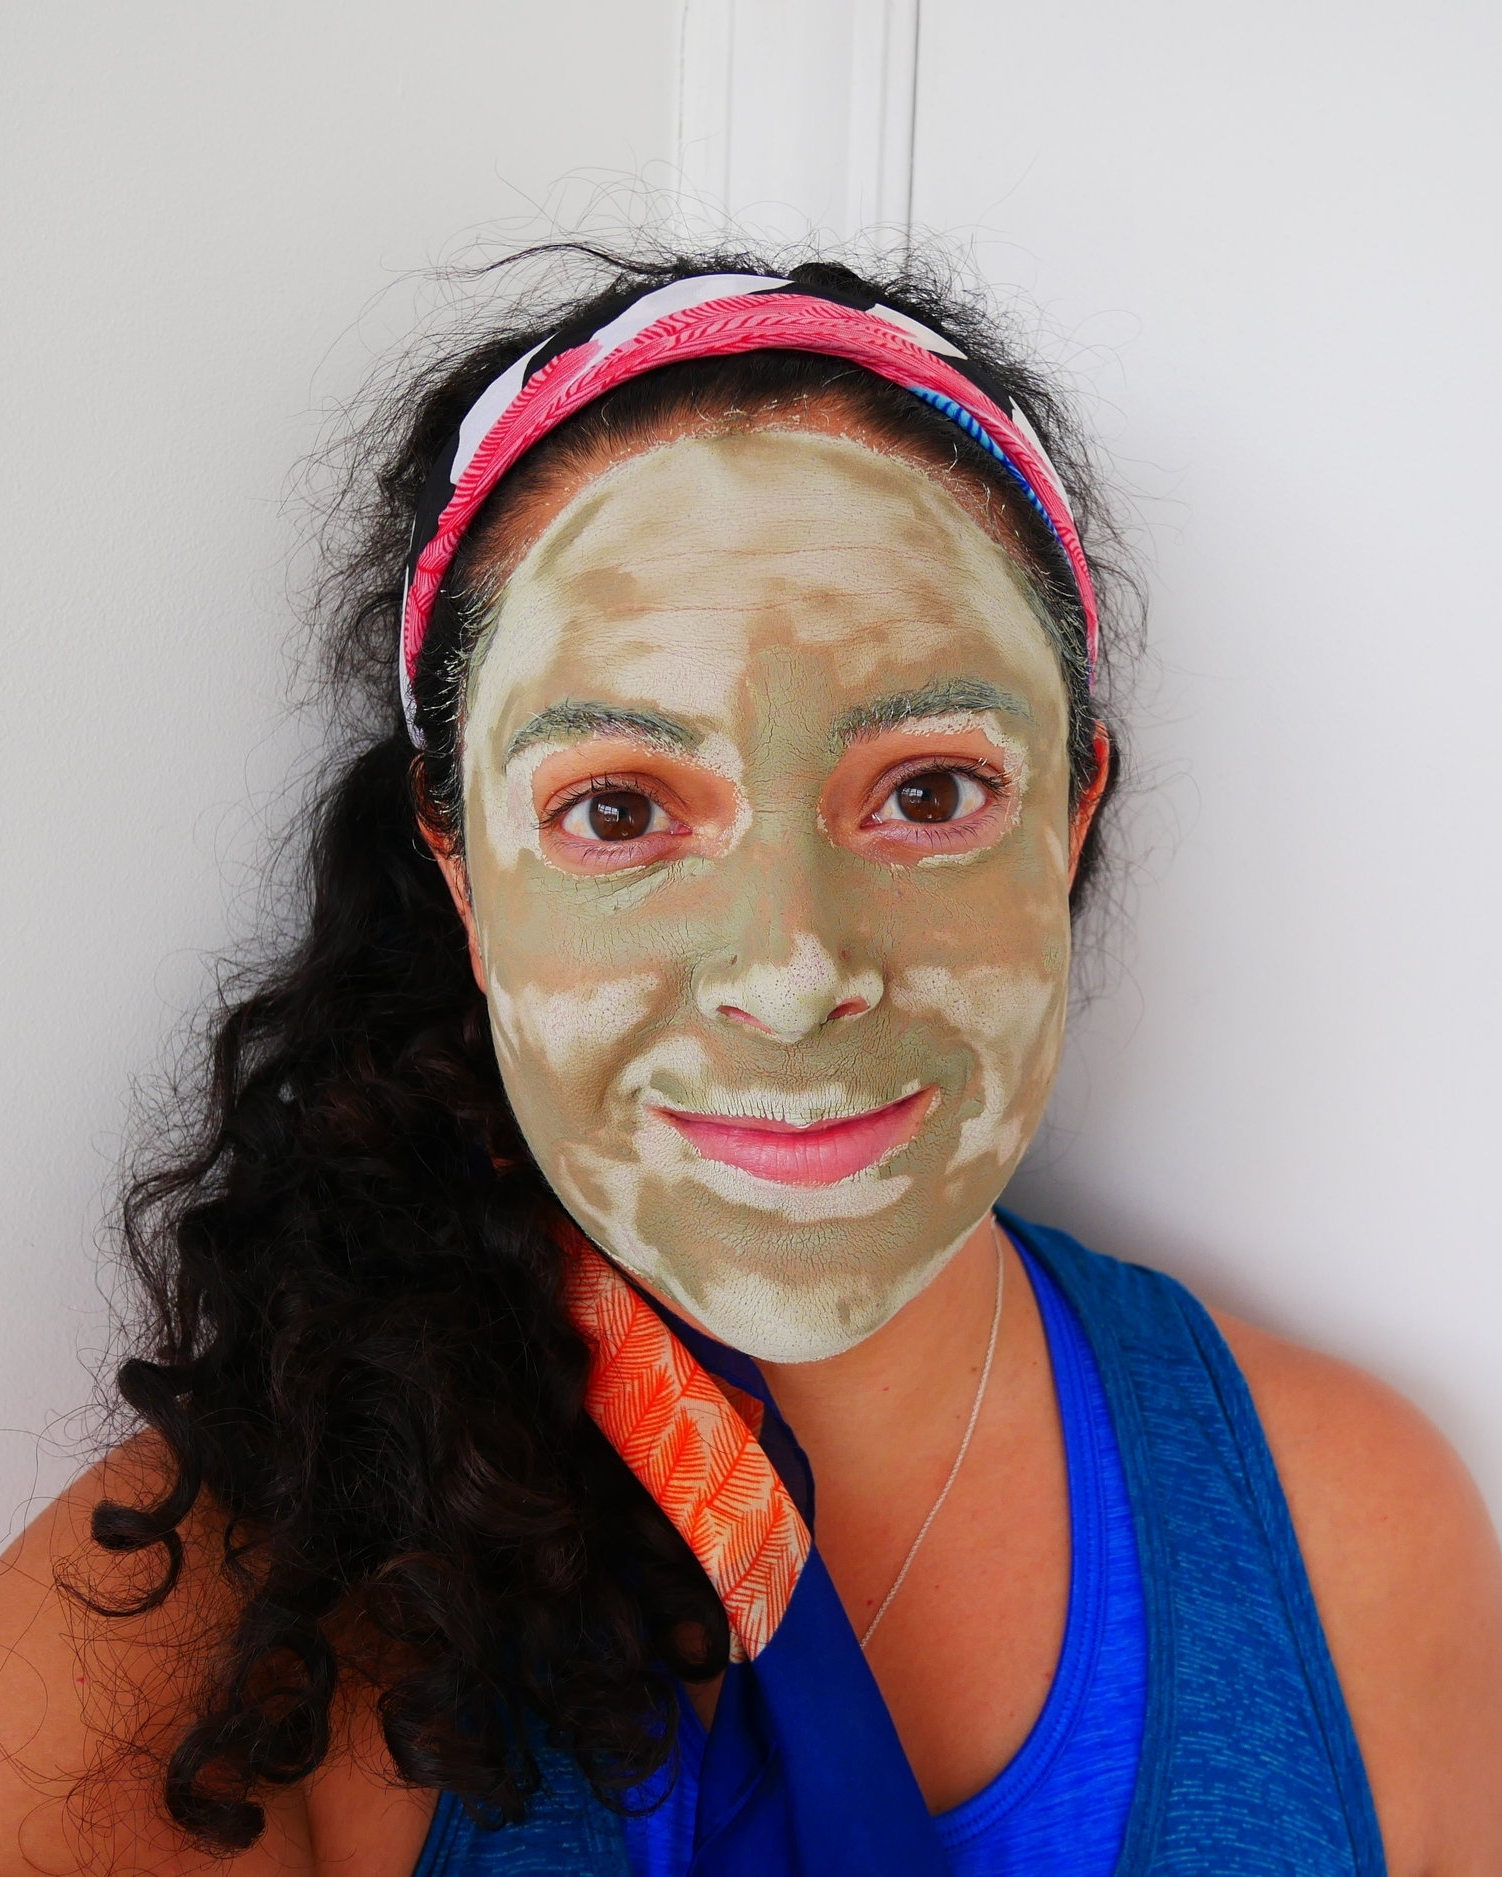 With the Umbrian clay mask